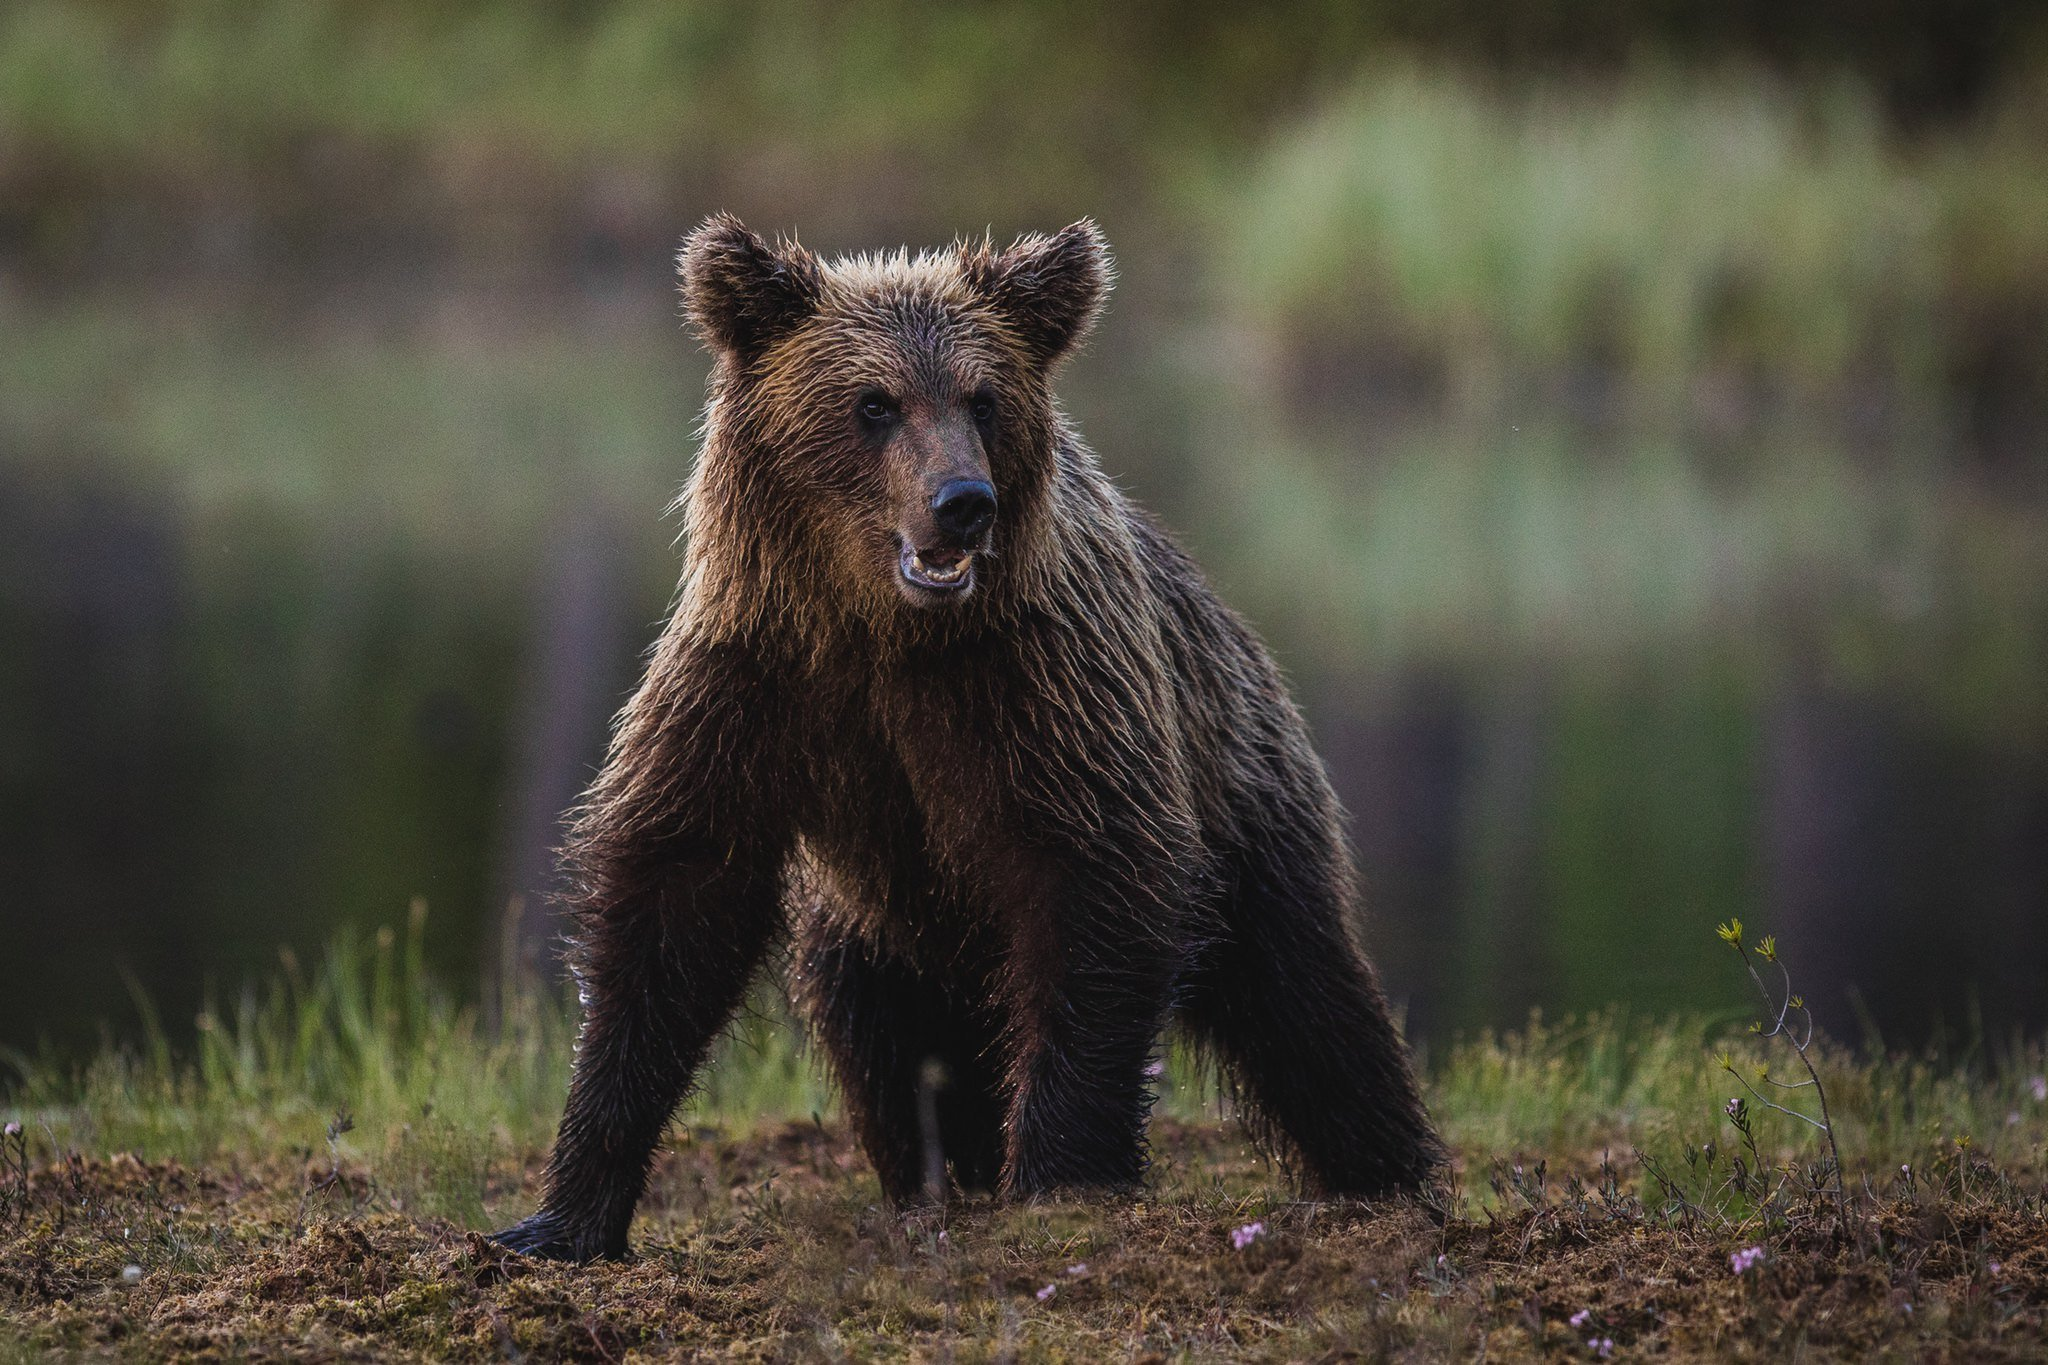 One Of The Younger Brown Bears Found In The Taiga Region Near The Russian Border   Photographed During The Wild Brown Bears Of Finland Photography Holiday